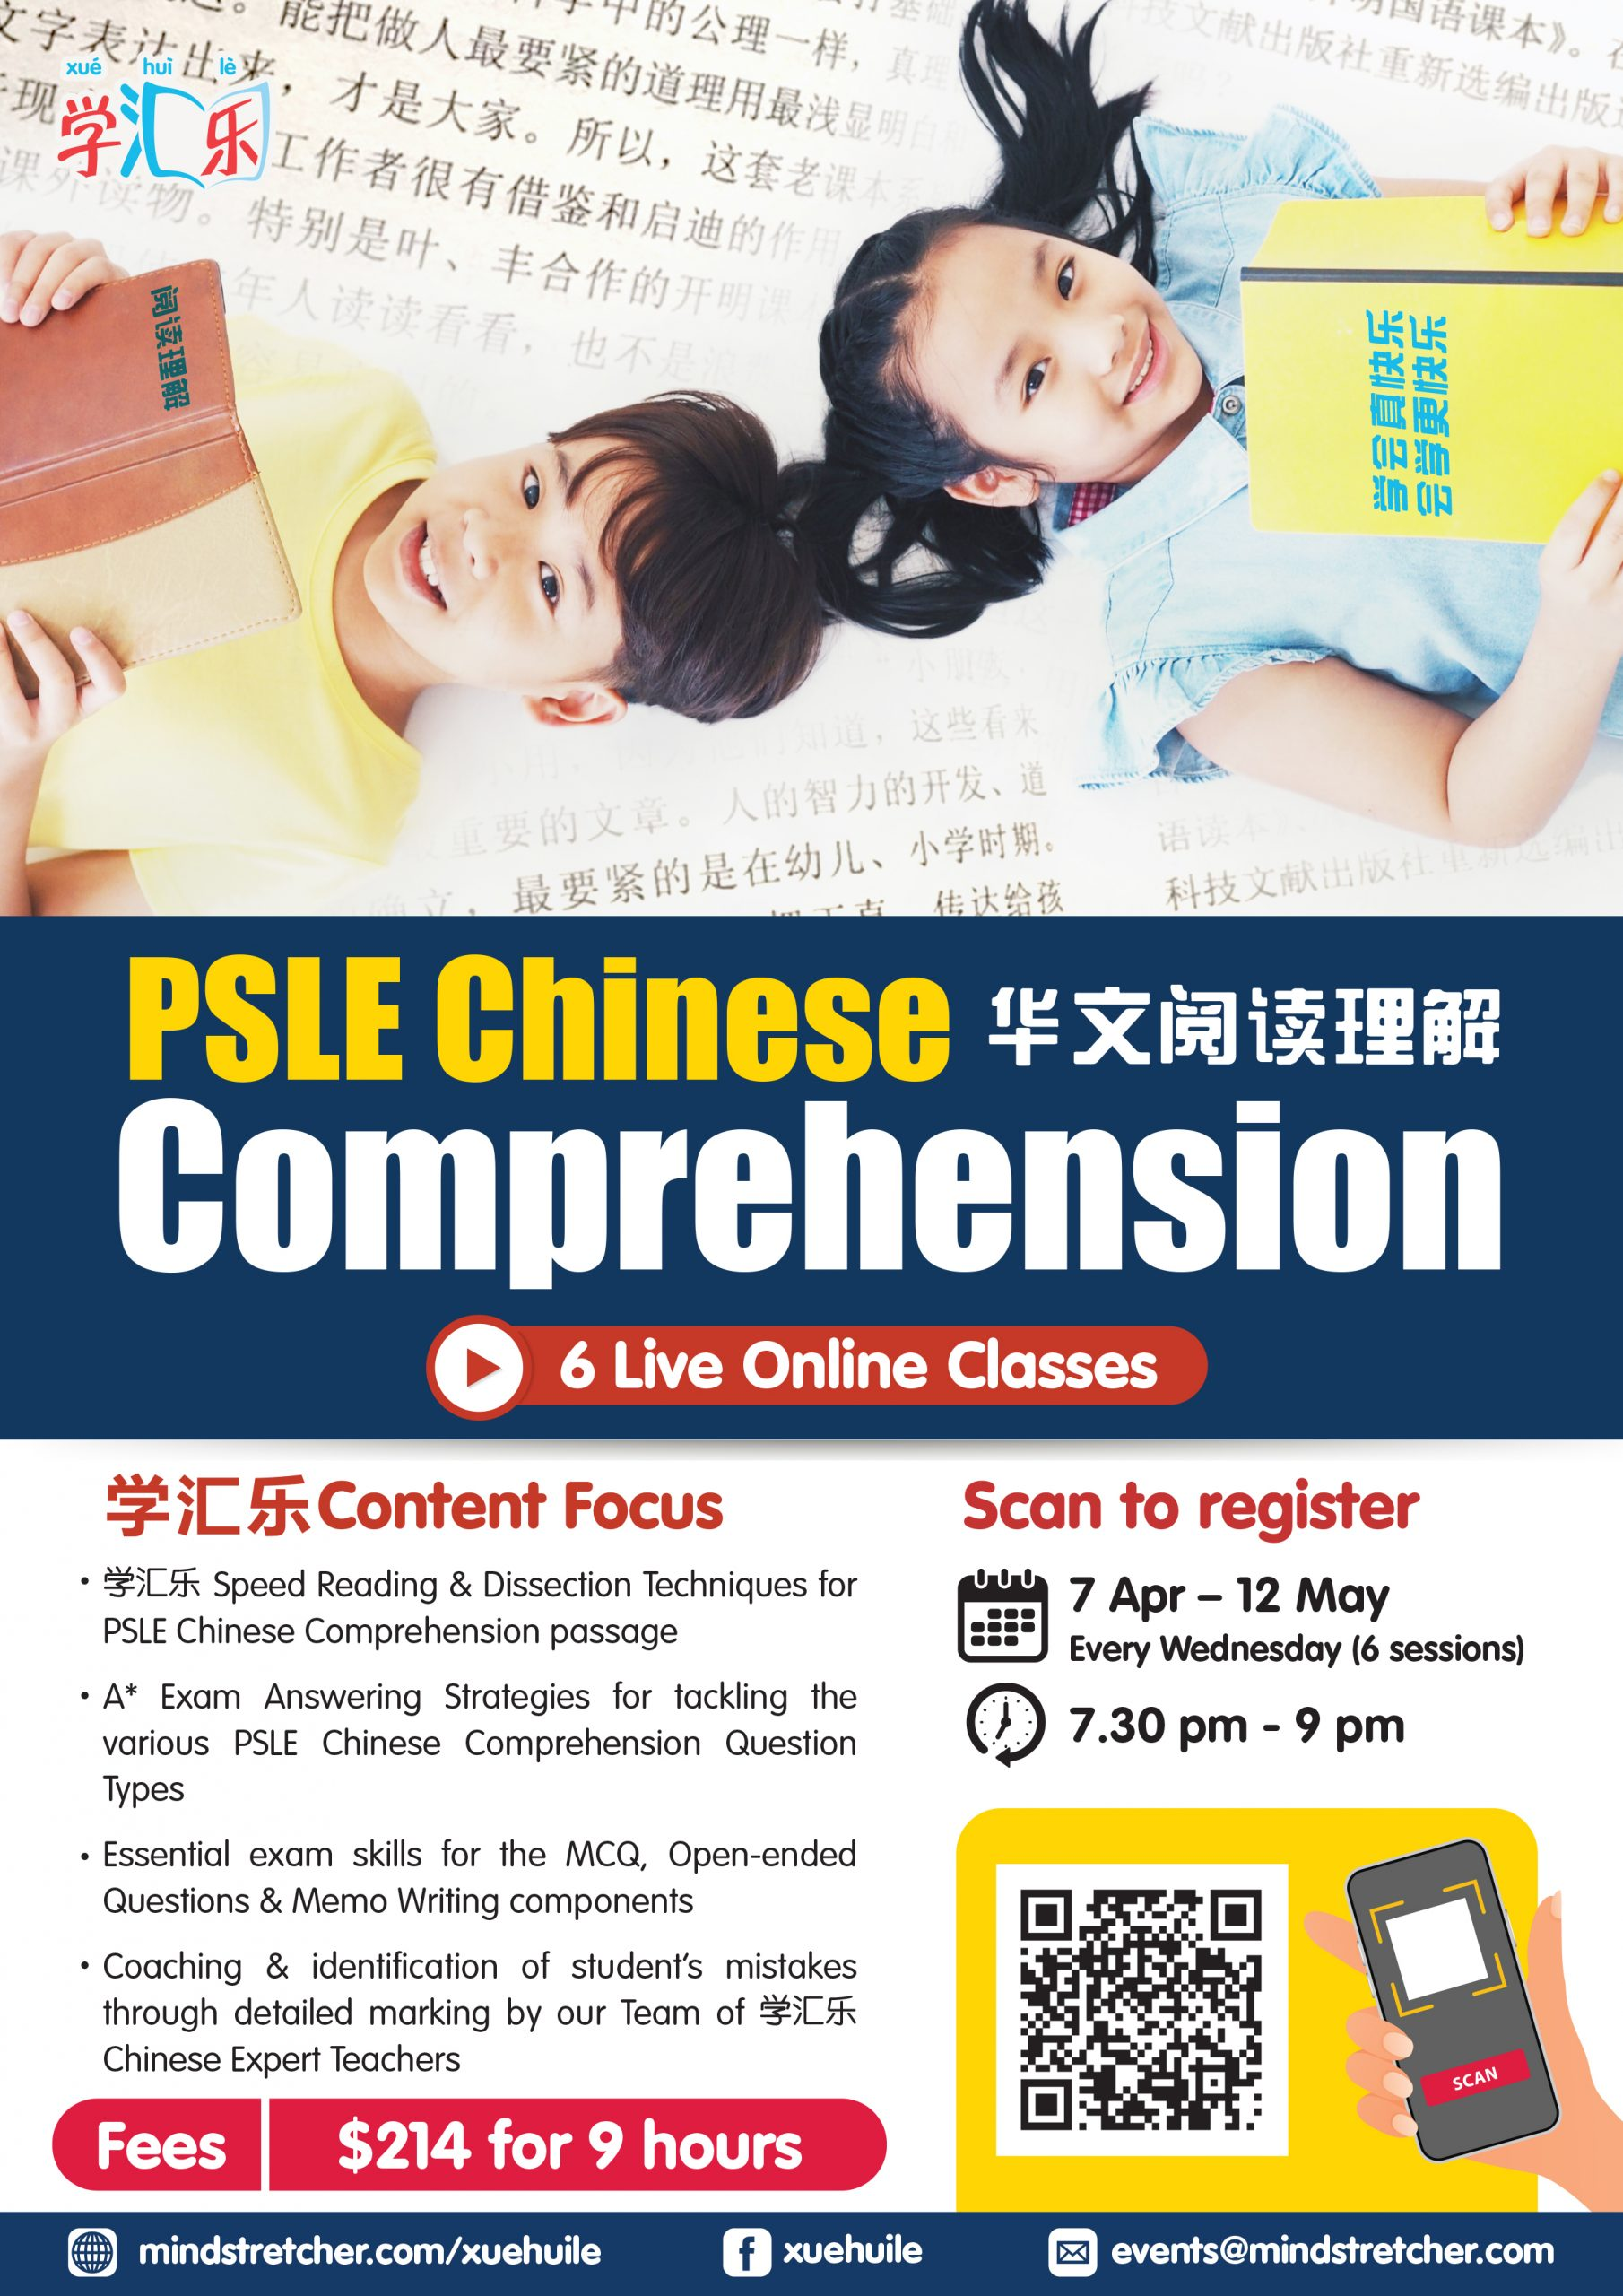 PSLE Chinese Comprehension